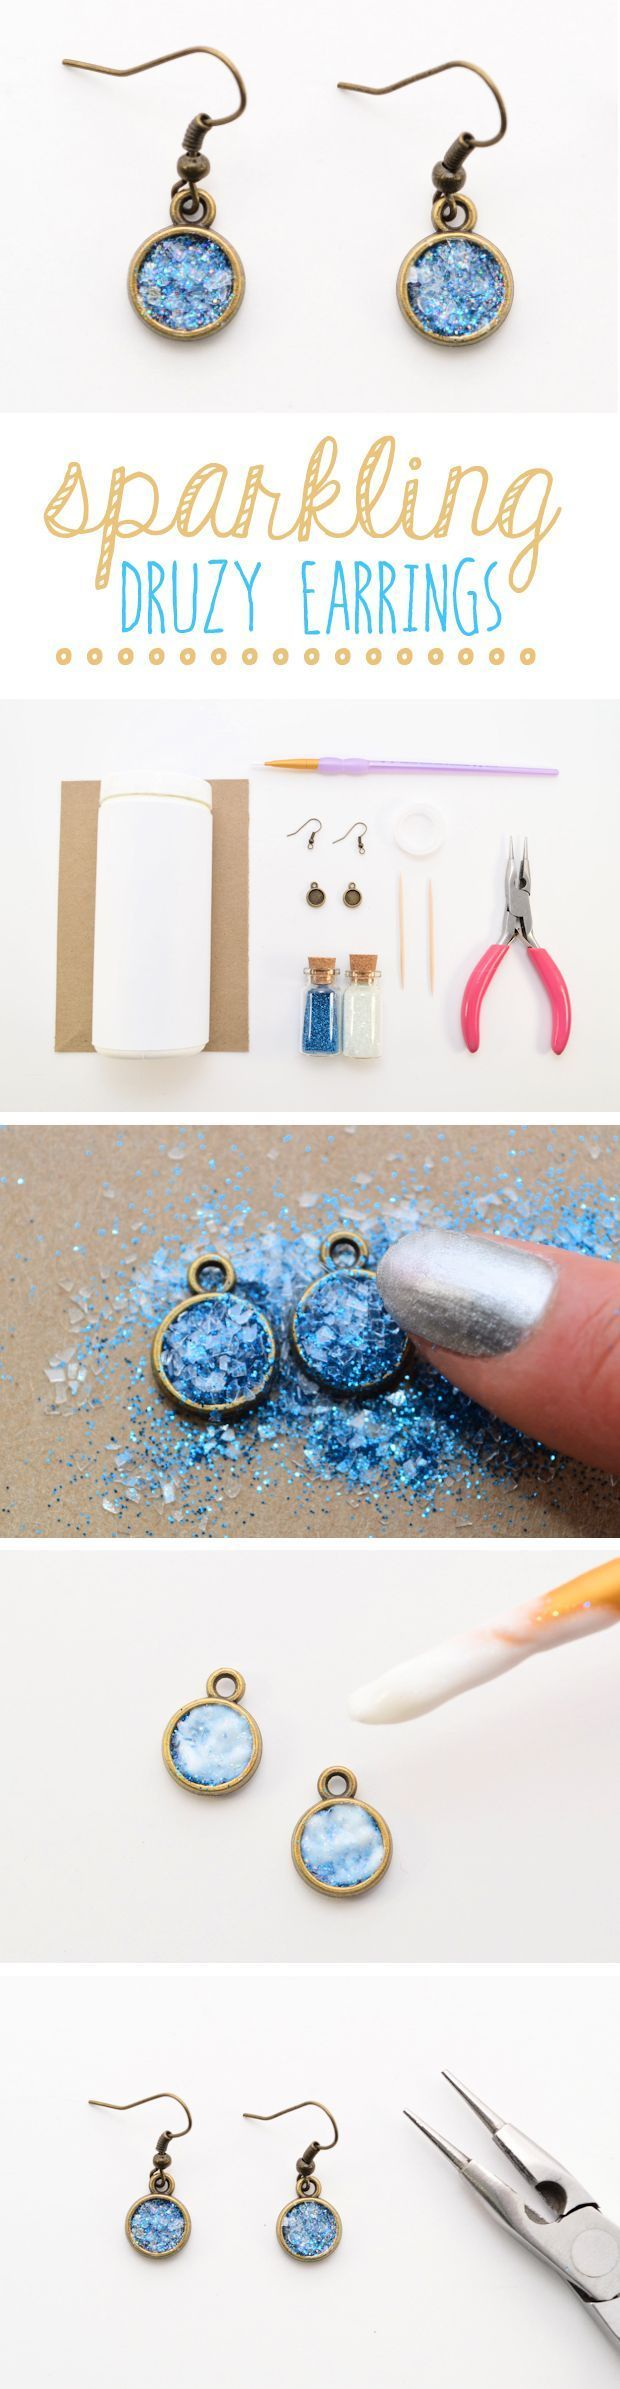 Whether you're a DIY maven or a design-obsessed fashionista, there's a good chance that you've spotted the druzy trend. Never heard of the term before? Druzy refers to the glittering layer of tiny crystals on a rock or stone. Luckily, you don't have to be a geologist to discover the sparkle. Mix up some glitter, add a little decoupage, and follow this tutorial for a pair of faux druzy earrings.